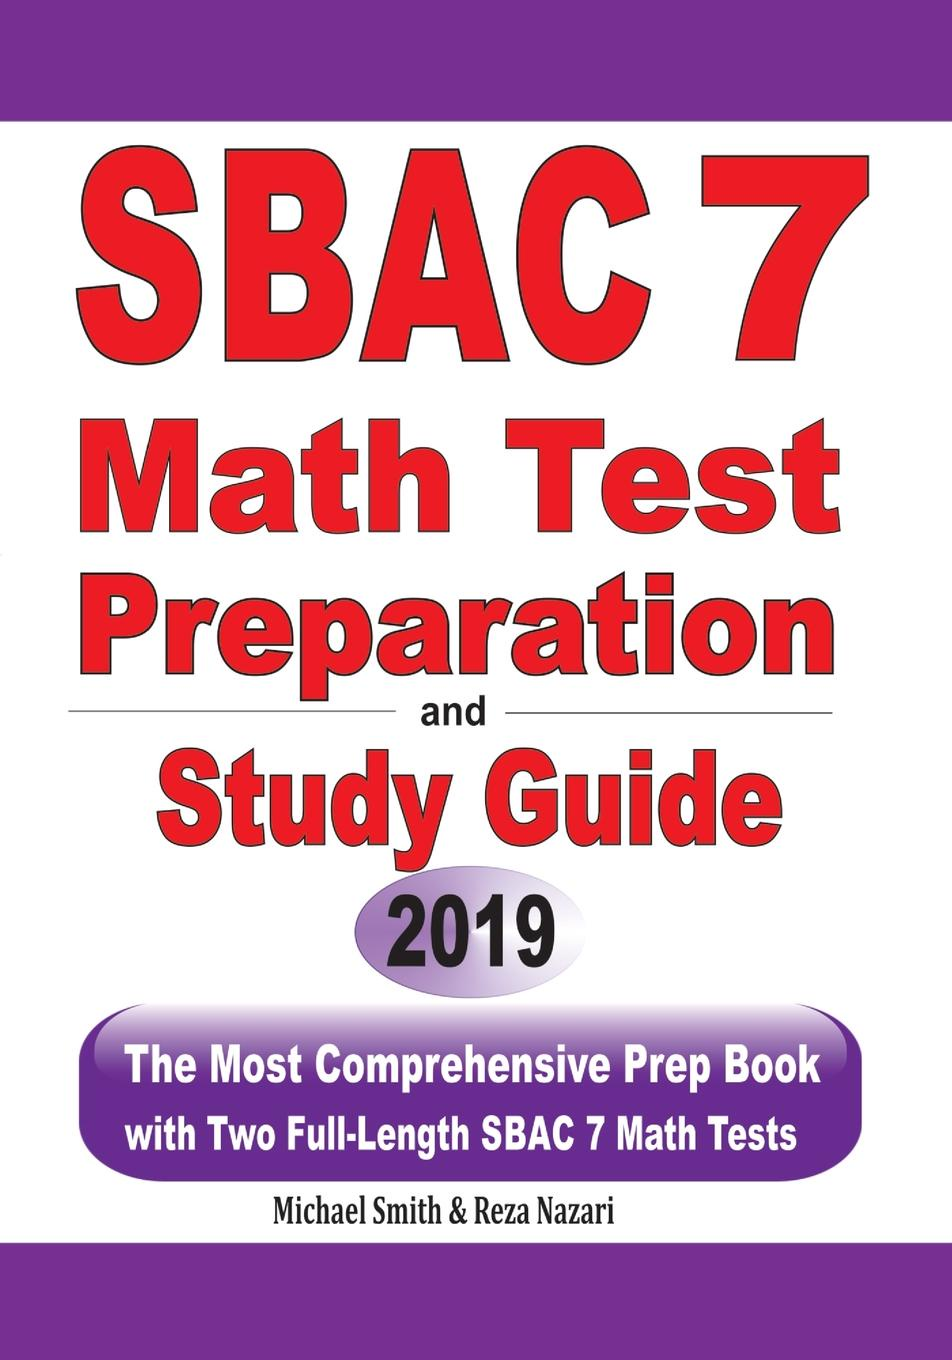 Michael Smith, Reza Nazari SBAC 7 Math Test Preparation and Study Guide. The Most Comprehensive Prep Book with Two Full-Length SBAC Math Tests